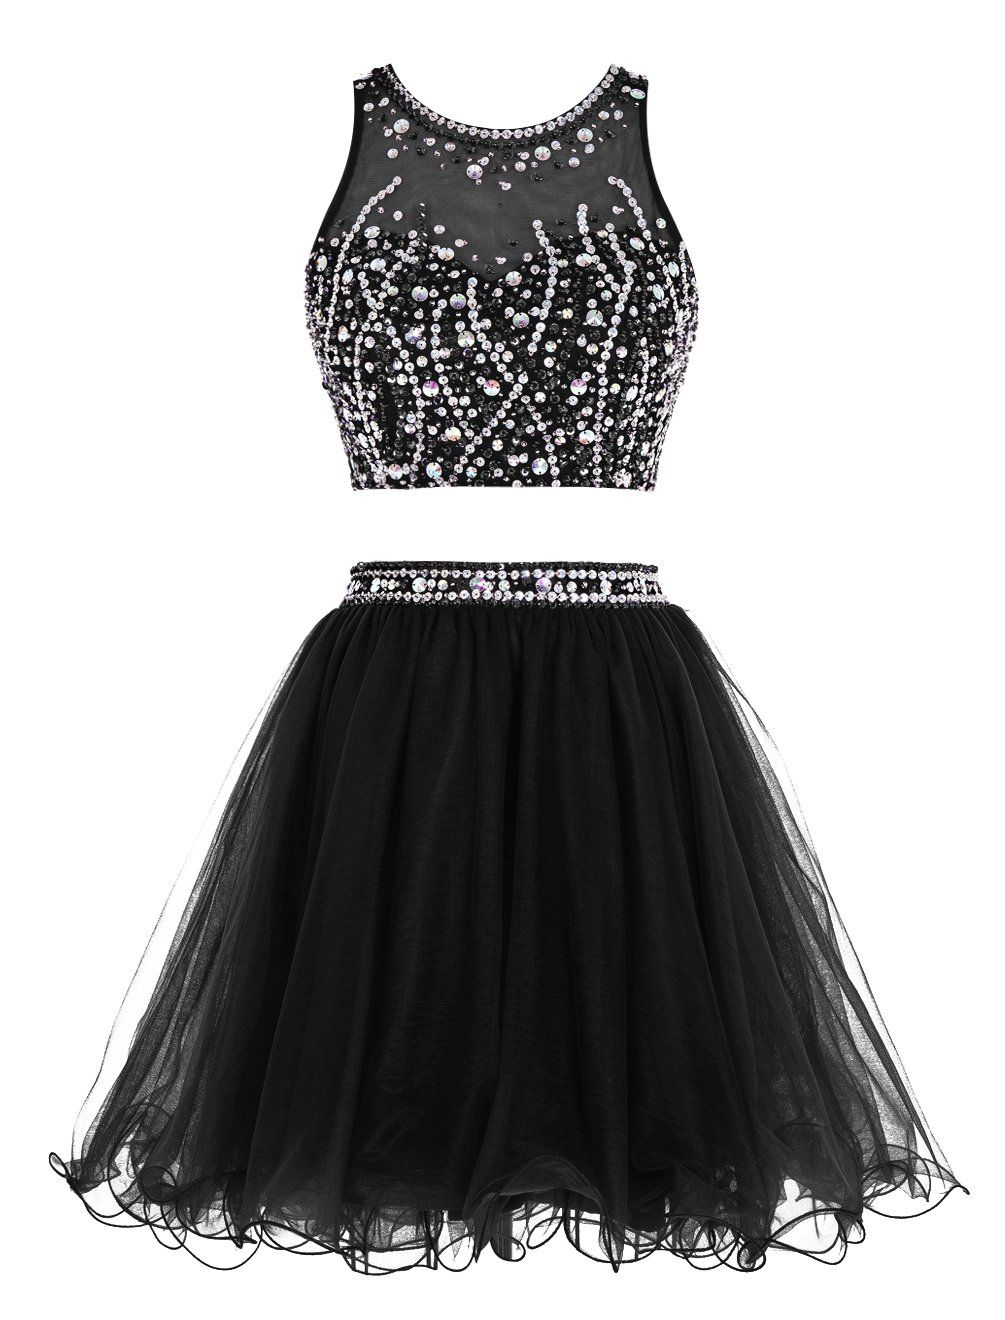 Robot Check Two Piece Homecoming Dress Prom Dresses Two Piece Short Cocktail Prom Dresses [ 1320 x 1005 Pixel ]